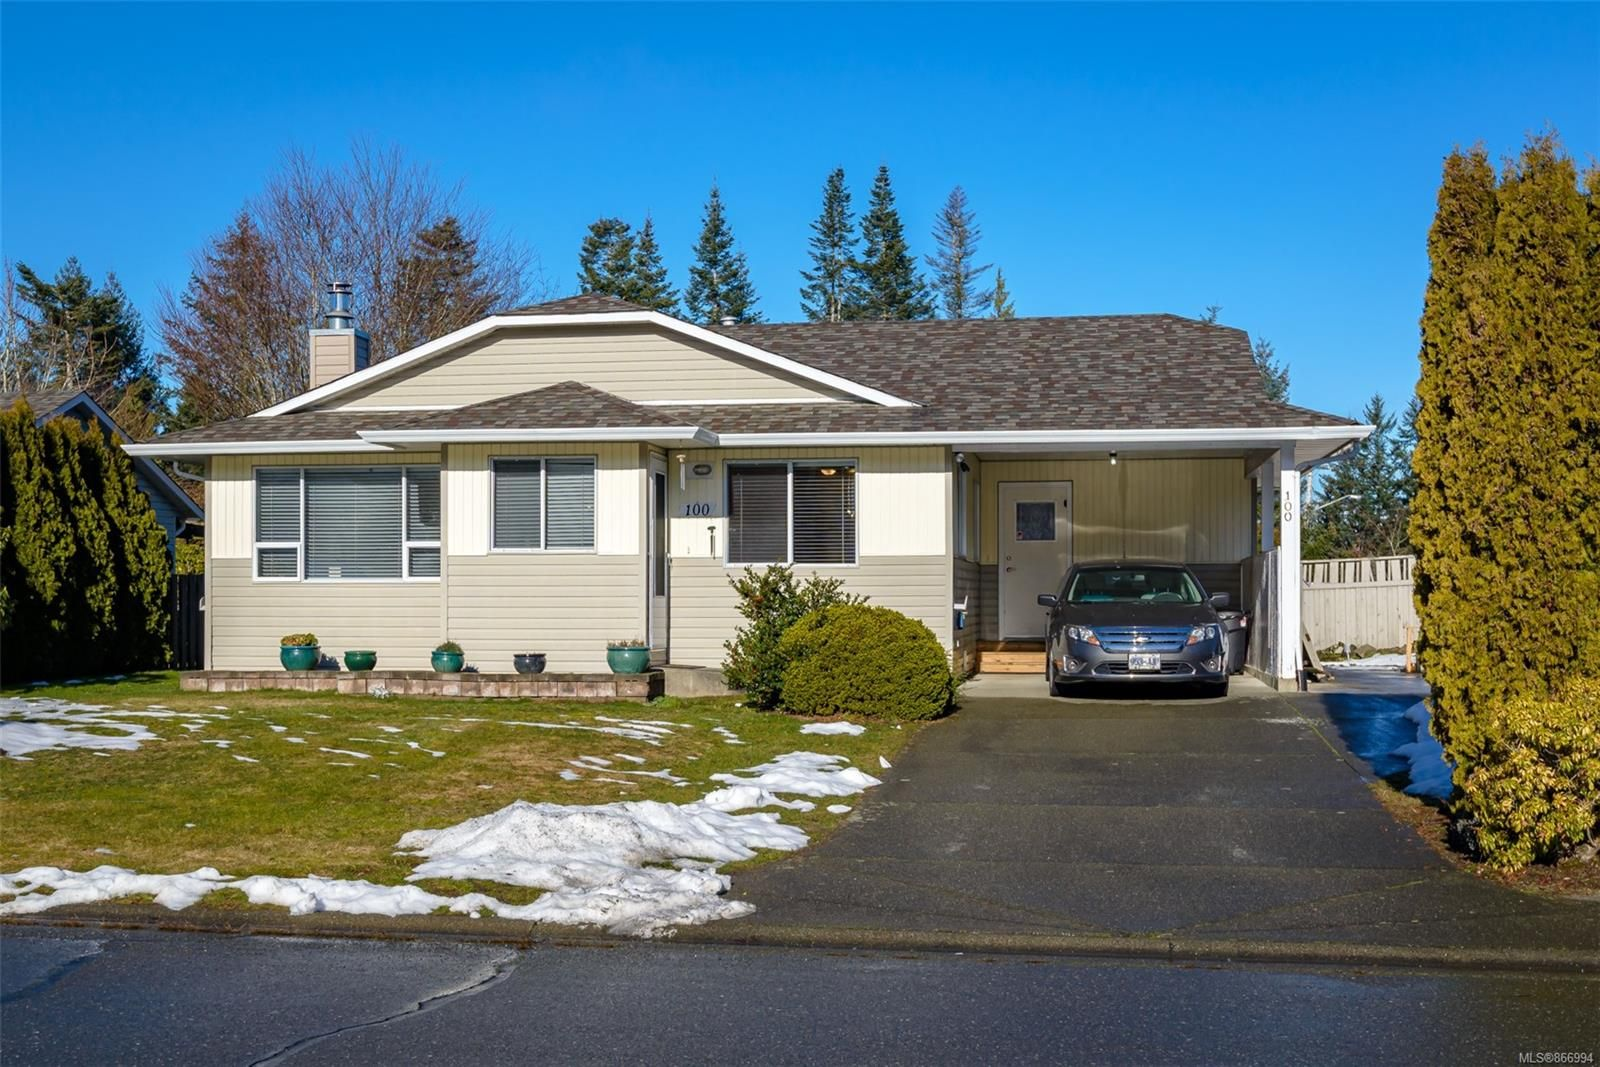 Main Photo: 100 Carmanah Dr in : CV Courtenay East House for sale (Comox Valley)  : MLS®# 866994